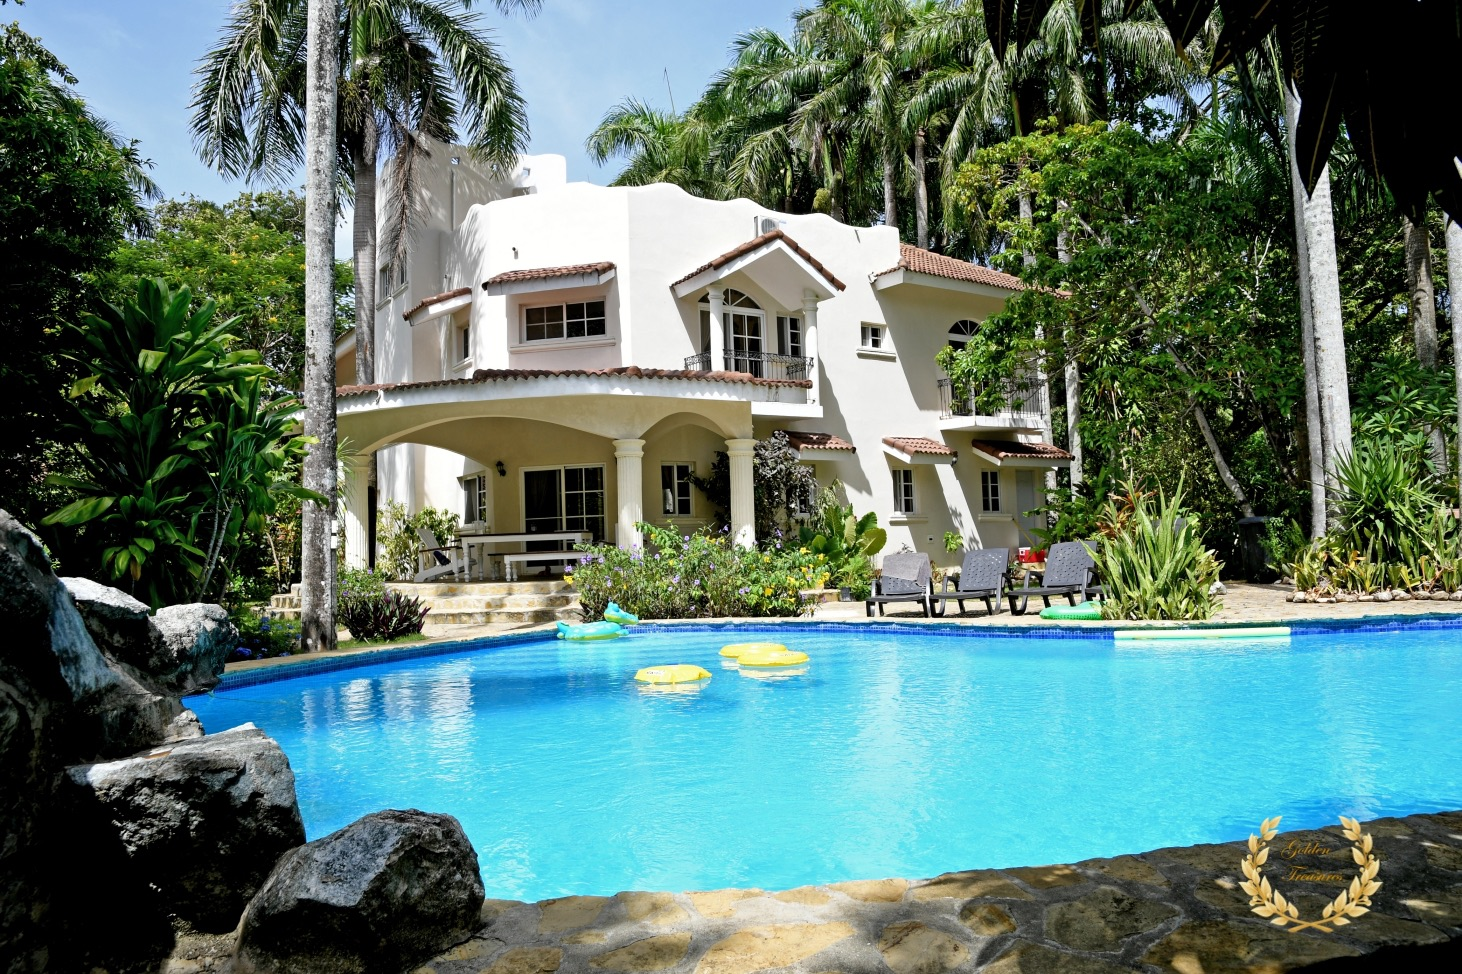 4 Bedroom House in Cabarete Dominican Republic